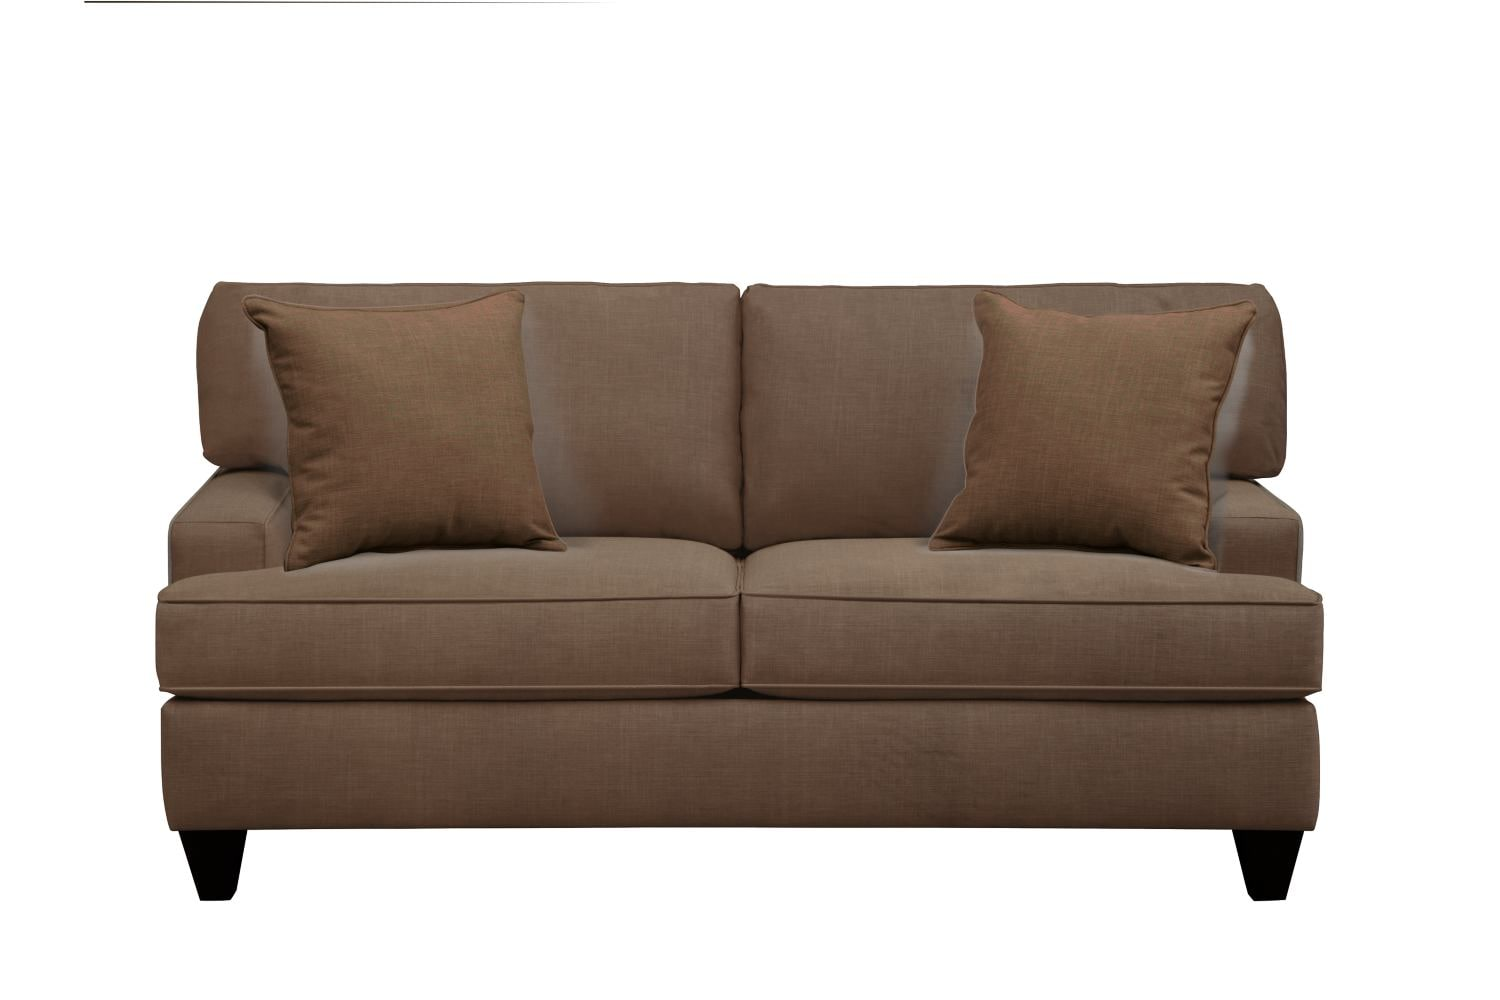 "Living Room Furniture - Conner Track Arm Sofa 75"" Oakley III Java w/ Oakley III Java Pillow"